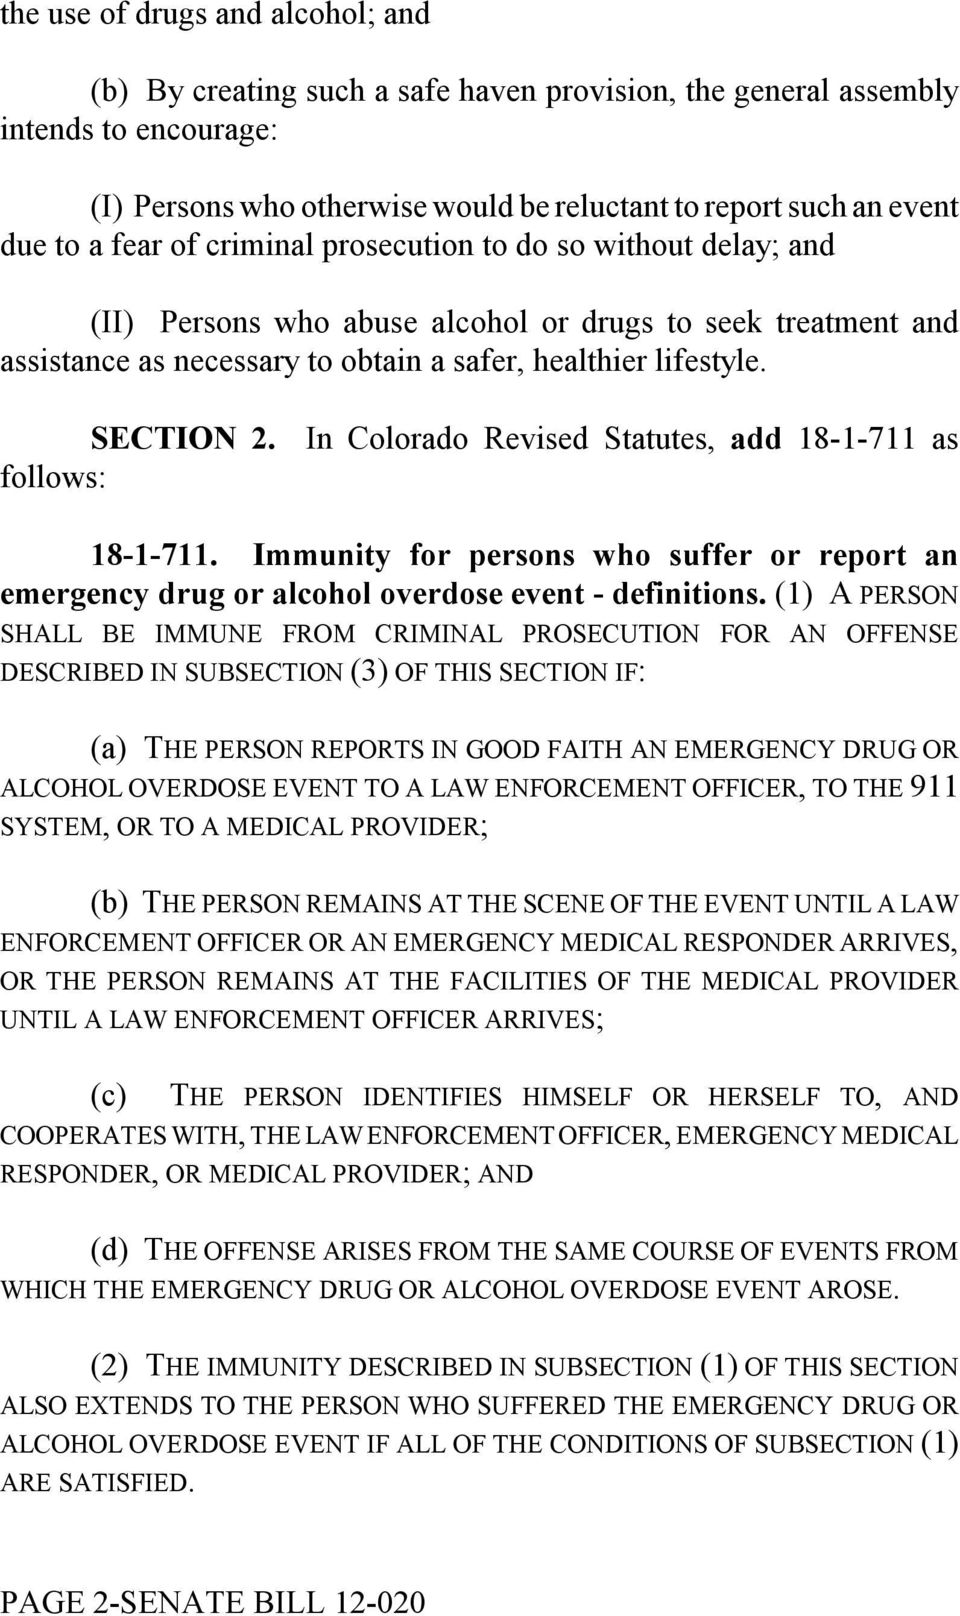 In Colorado Revised Statutes, add 18-1-711 as follows: 18-1-711. Immunity for persons who suffer or report an emergency drug or alcohol overdose event - definitions.